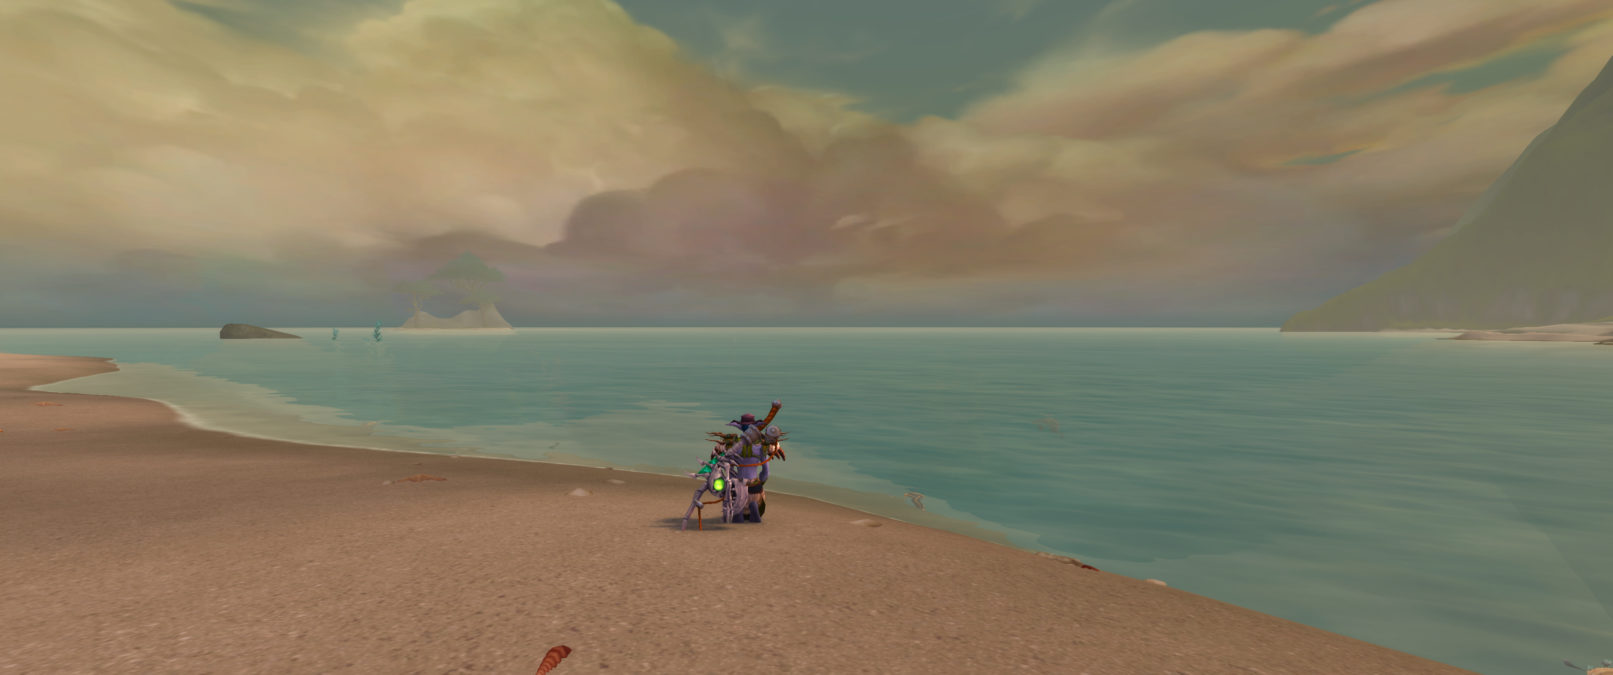 Fishing in Zandalar